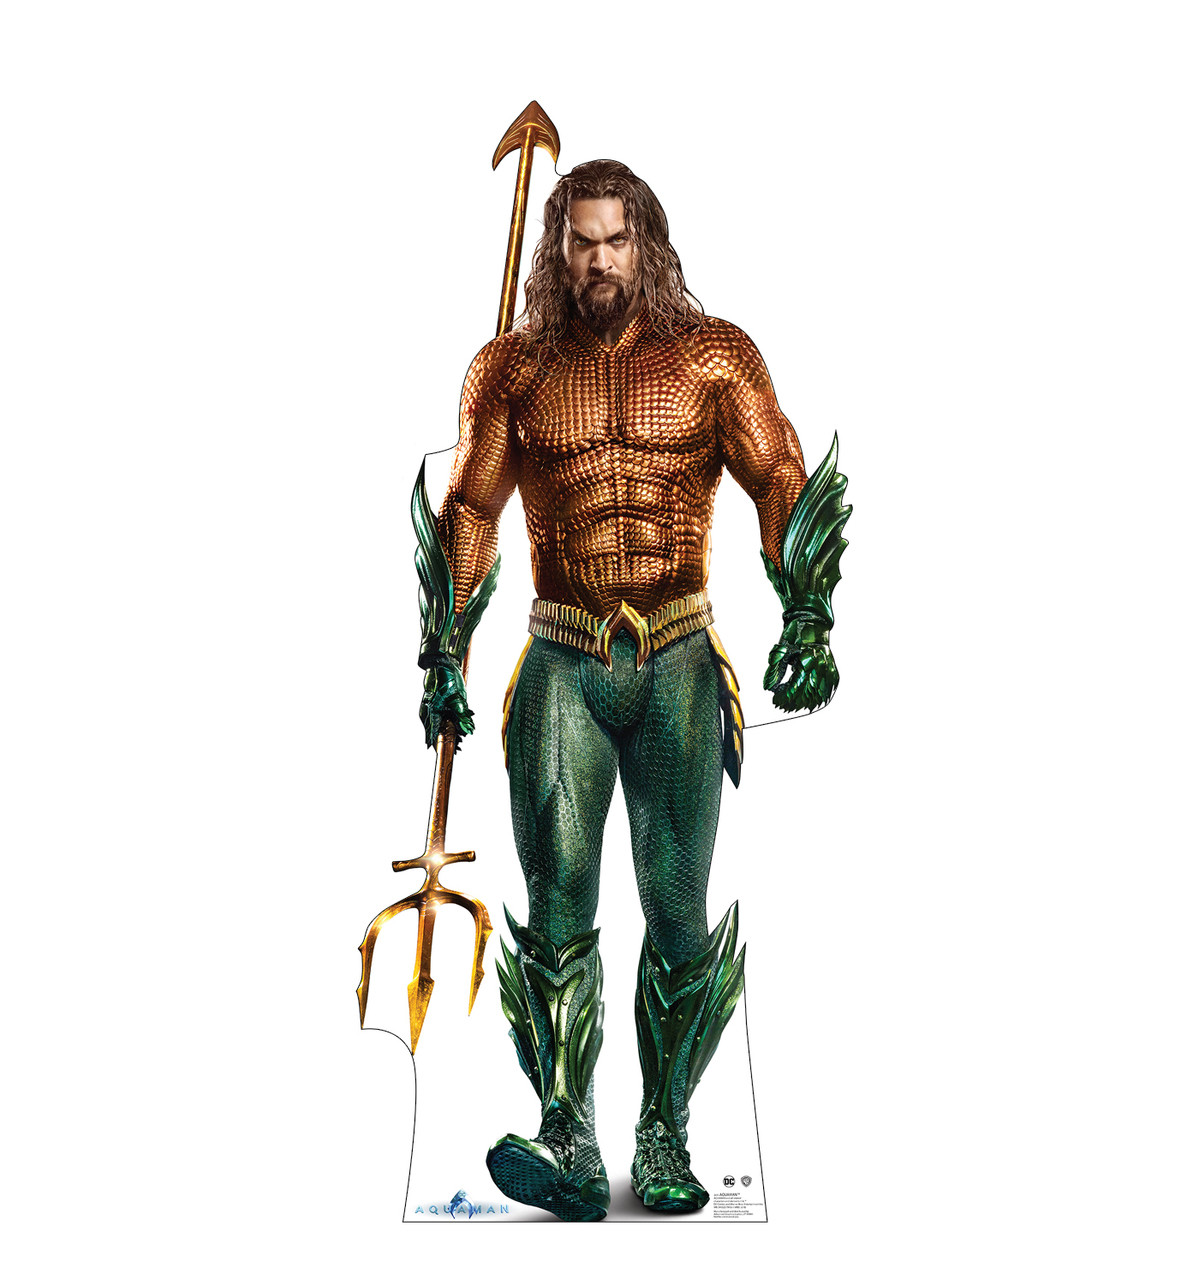 Life-size cardboard standee of the super hero Aquaman.